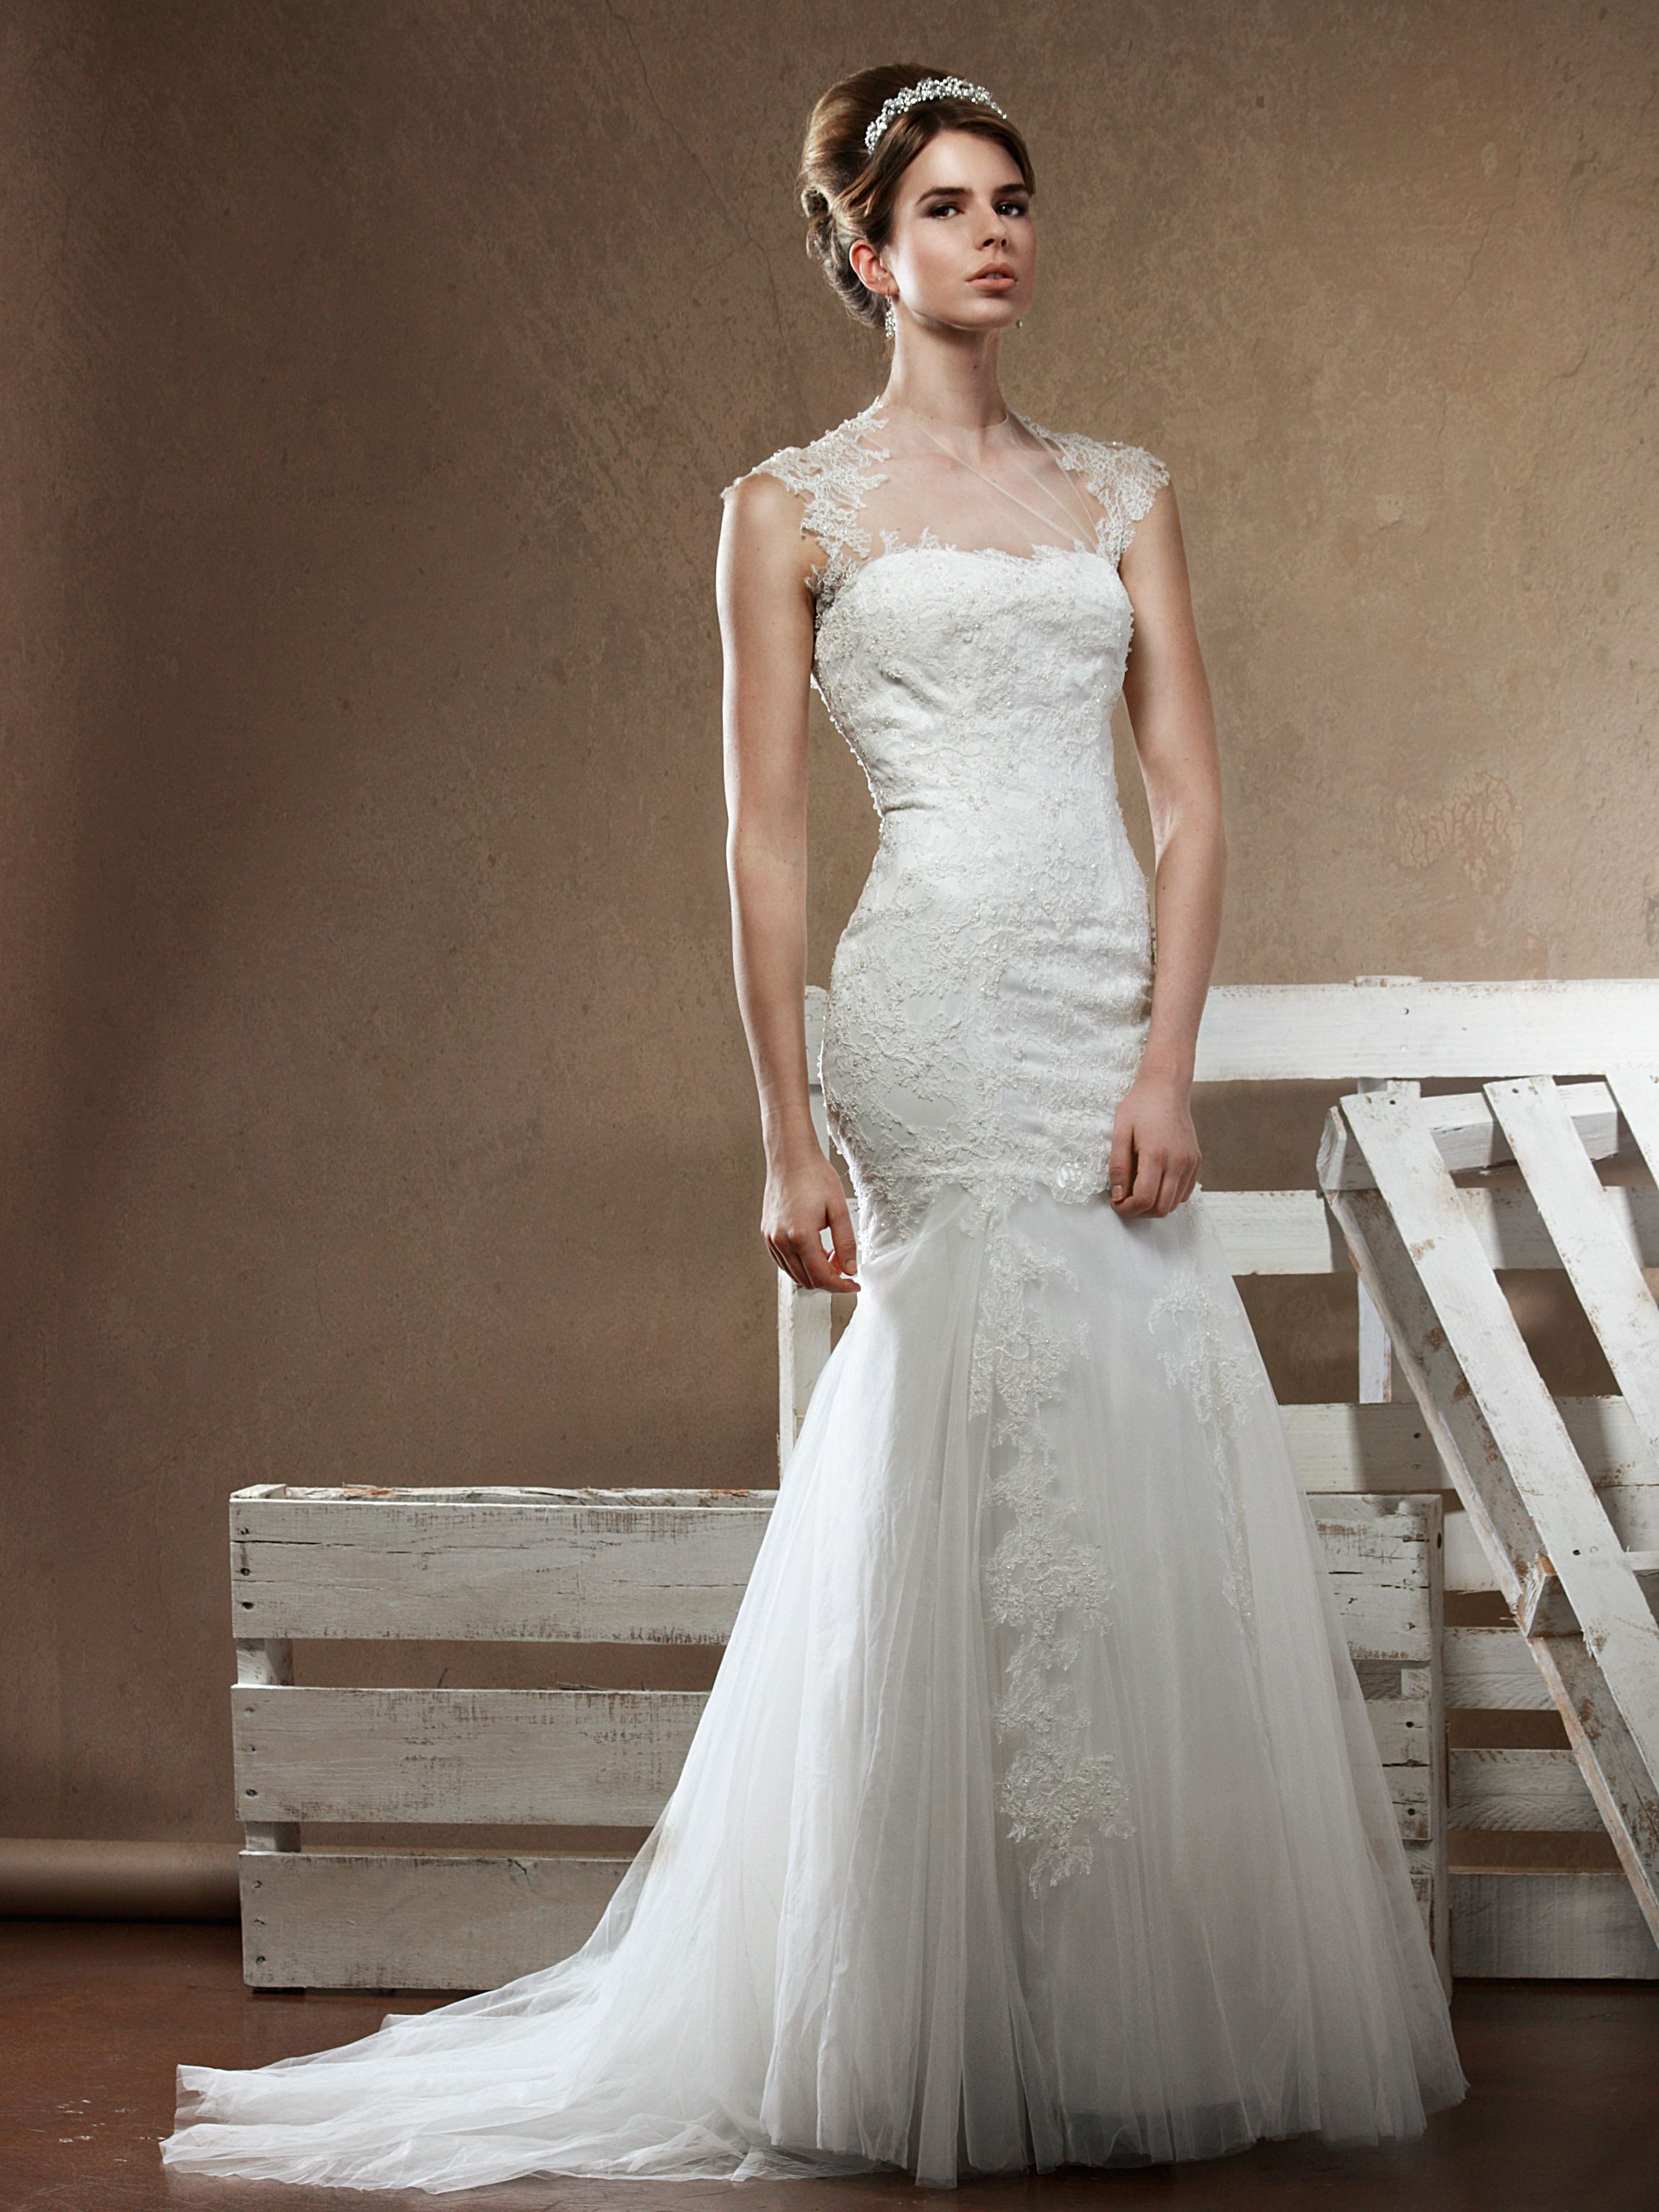 Pre Black Friday Huge Markdowns Taken On Sample Gowns They Start At